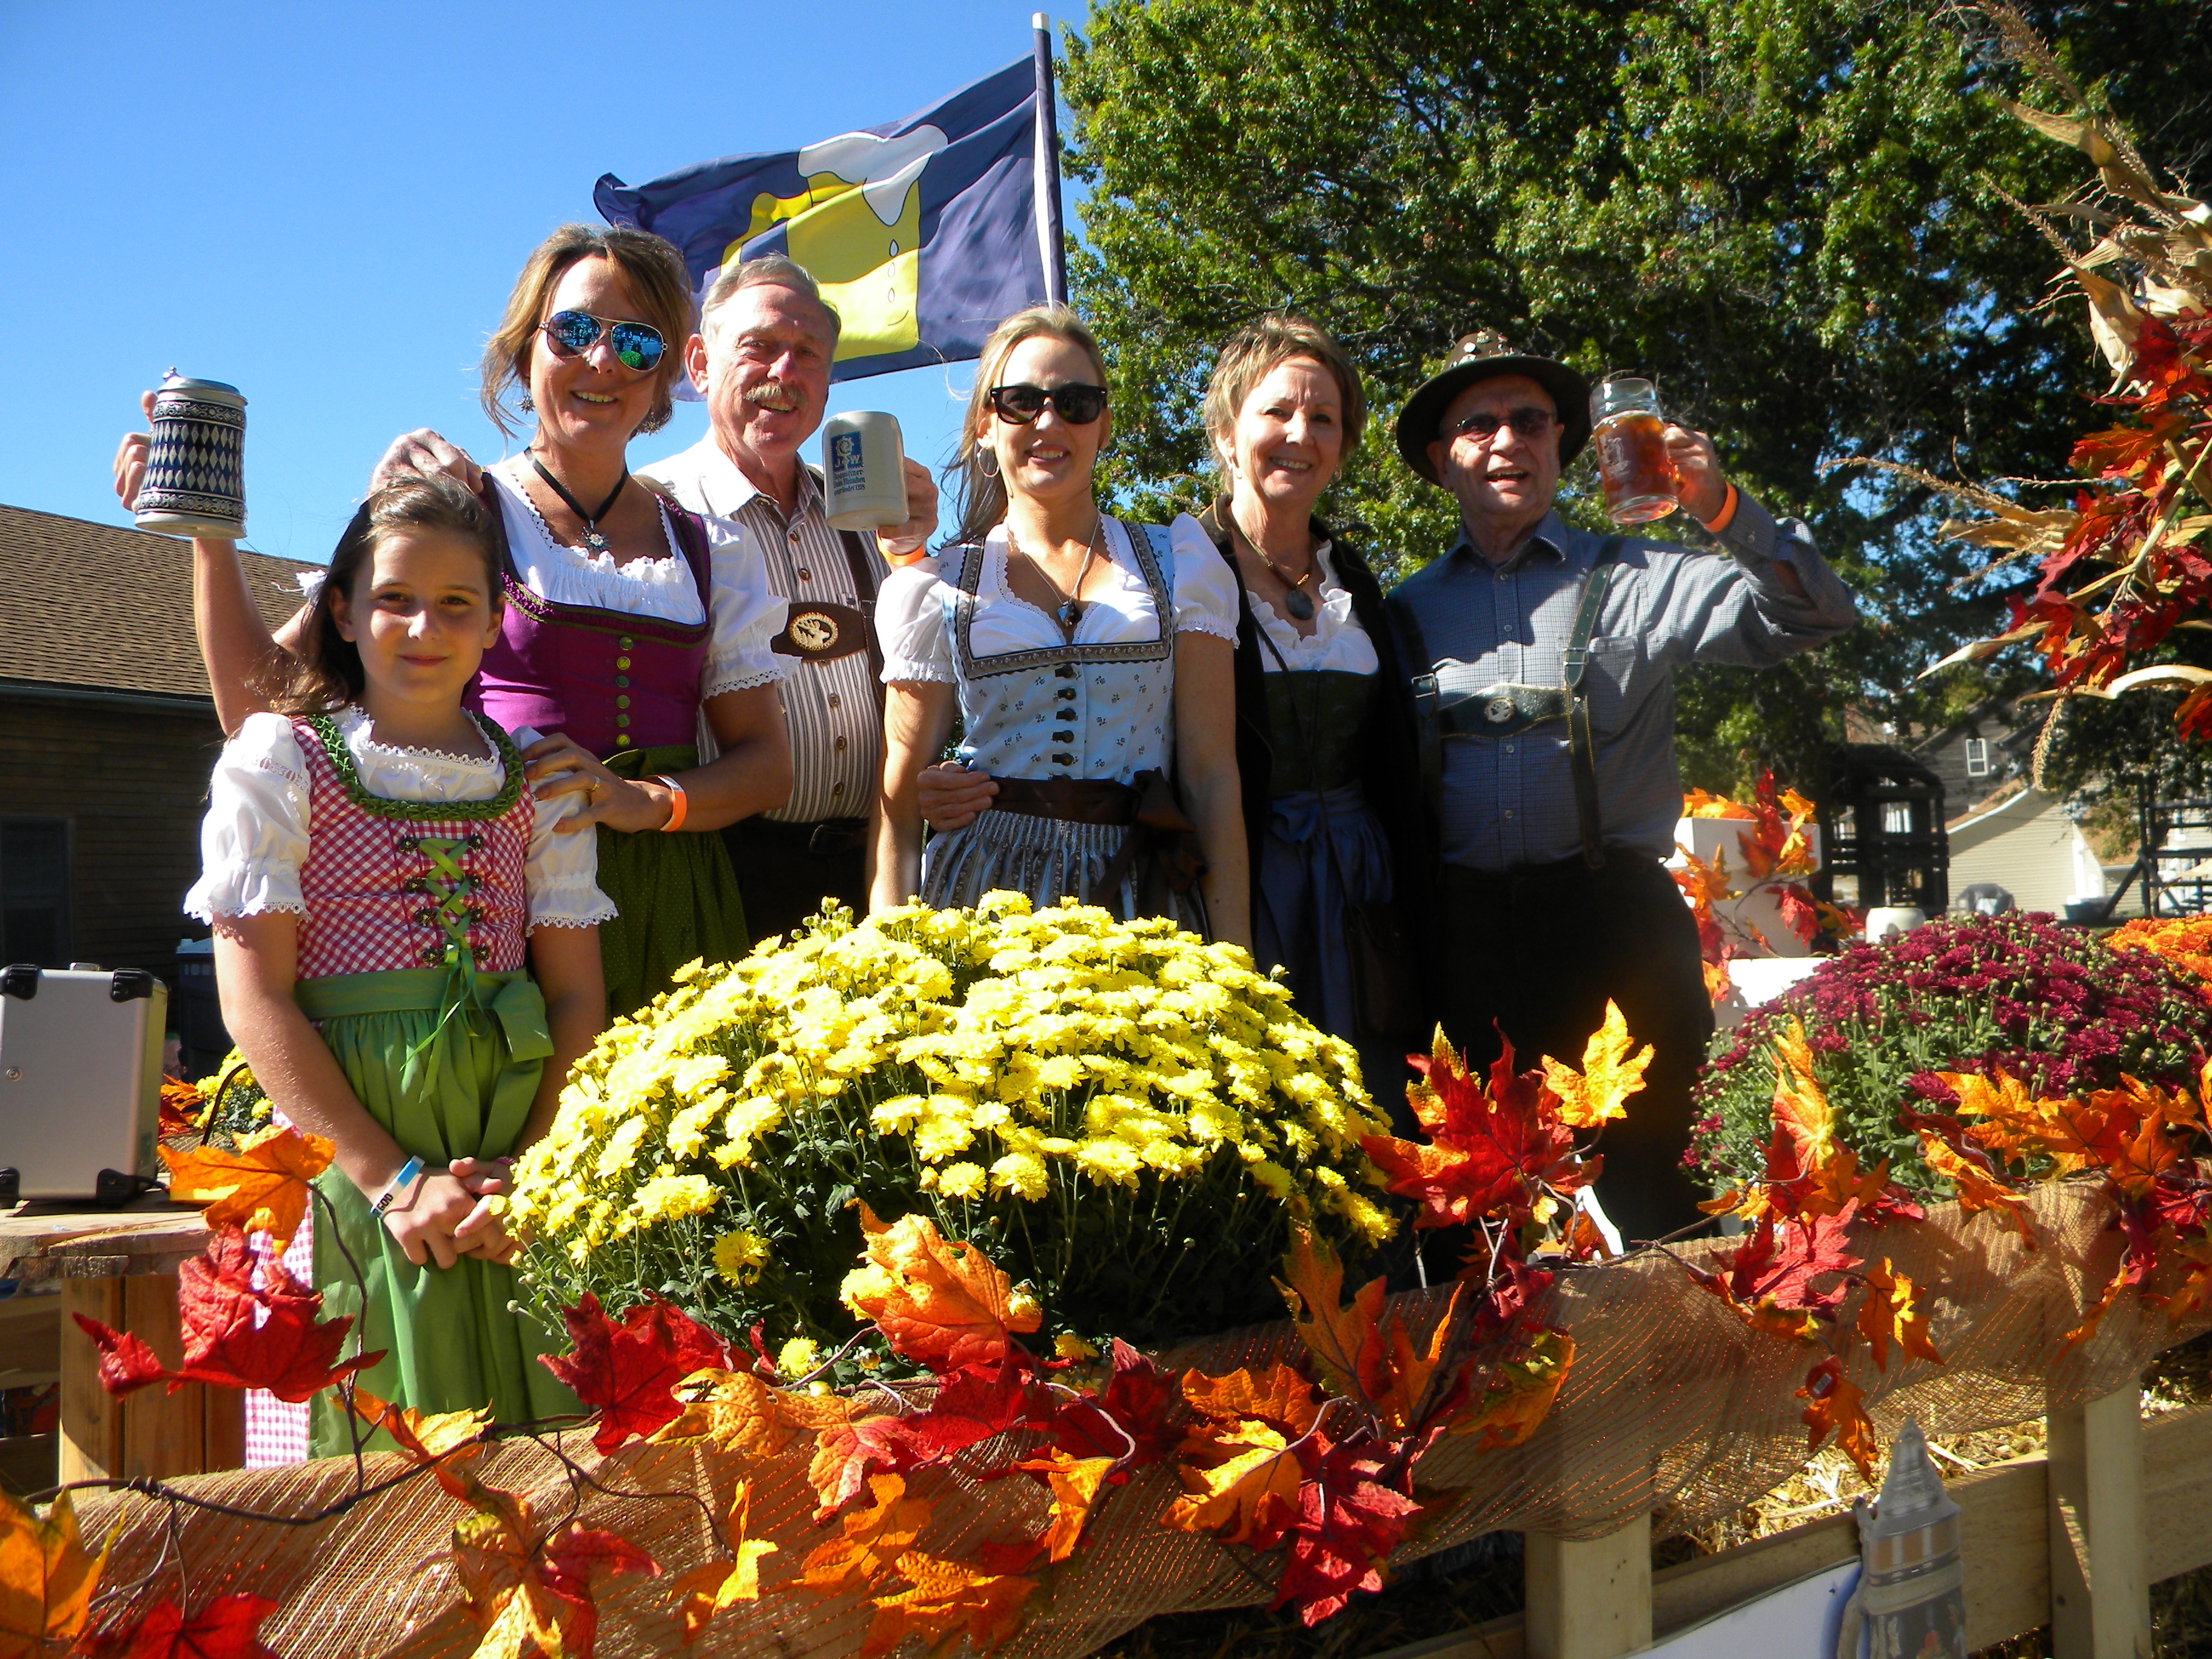 Family dressed in German garb at the Amana Colonies Oktoberfest celebration in Iowa